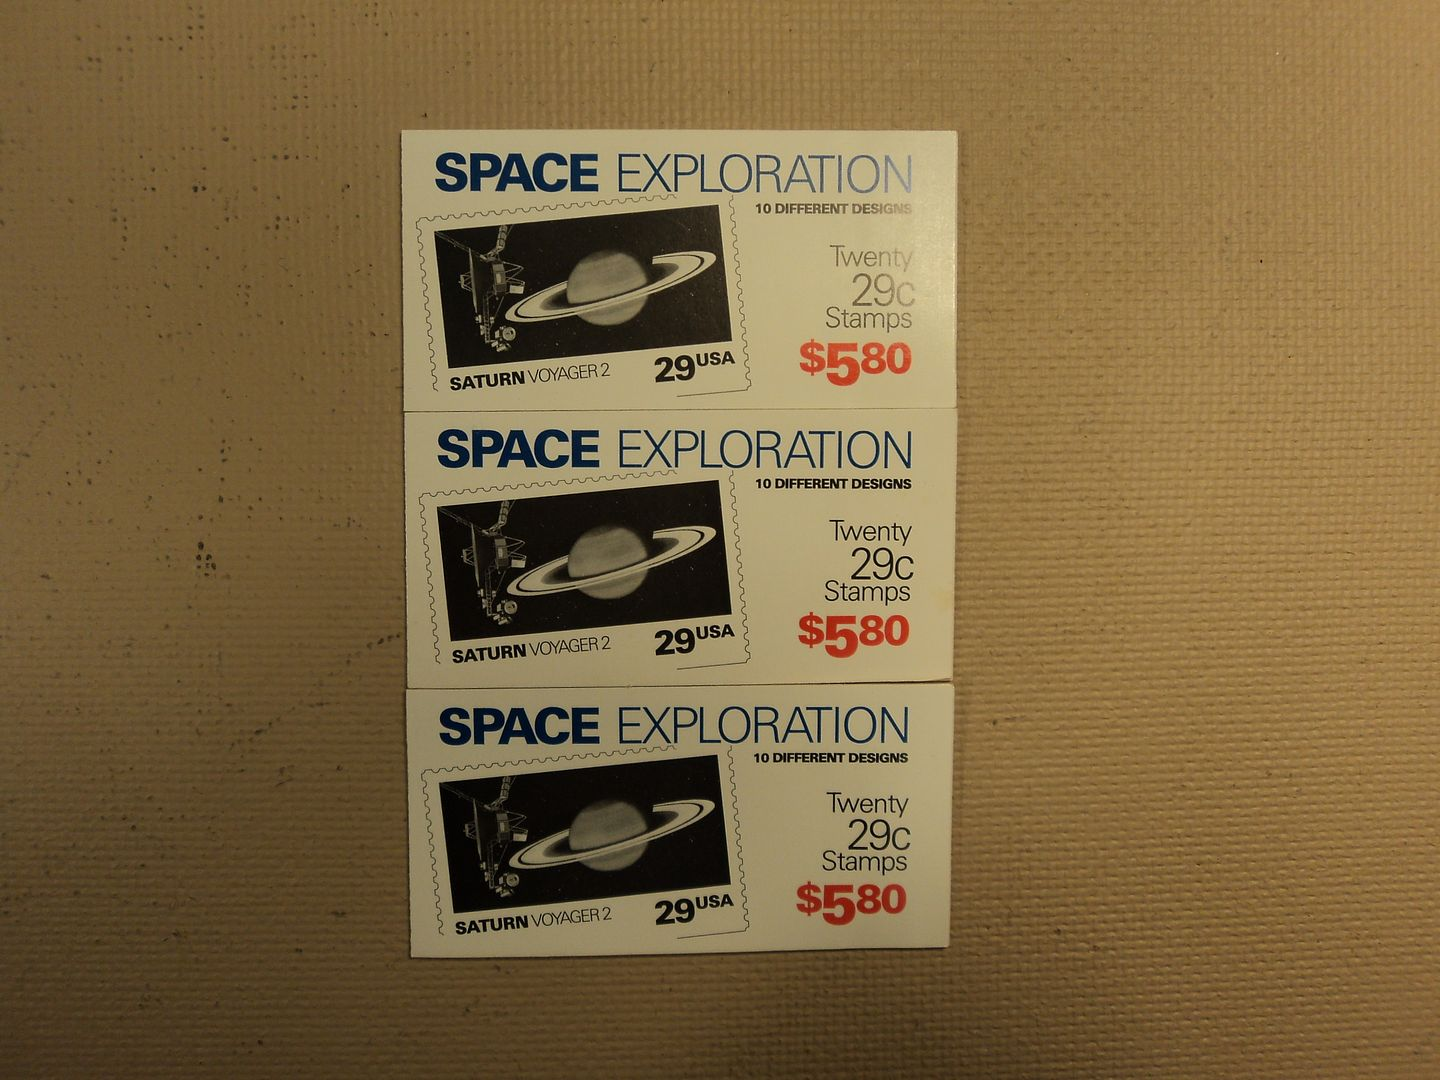 031913-2012c-V USPS Scott 2568-77 29c 1991 Space Exploration 3 Books Of 20 60 Stamps 6 Panes photo DSC02484.jpg